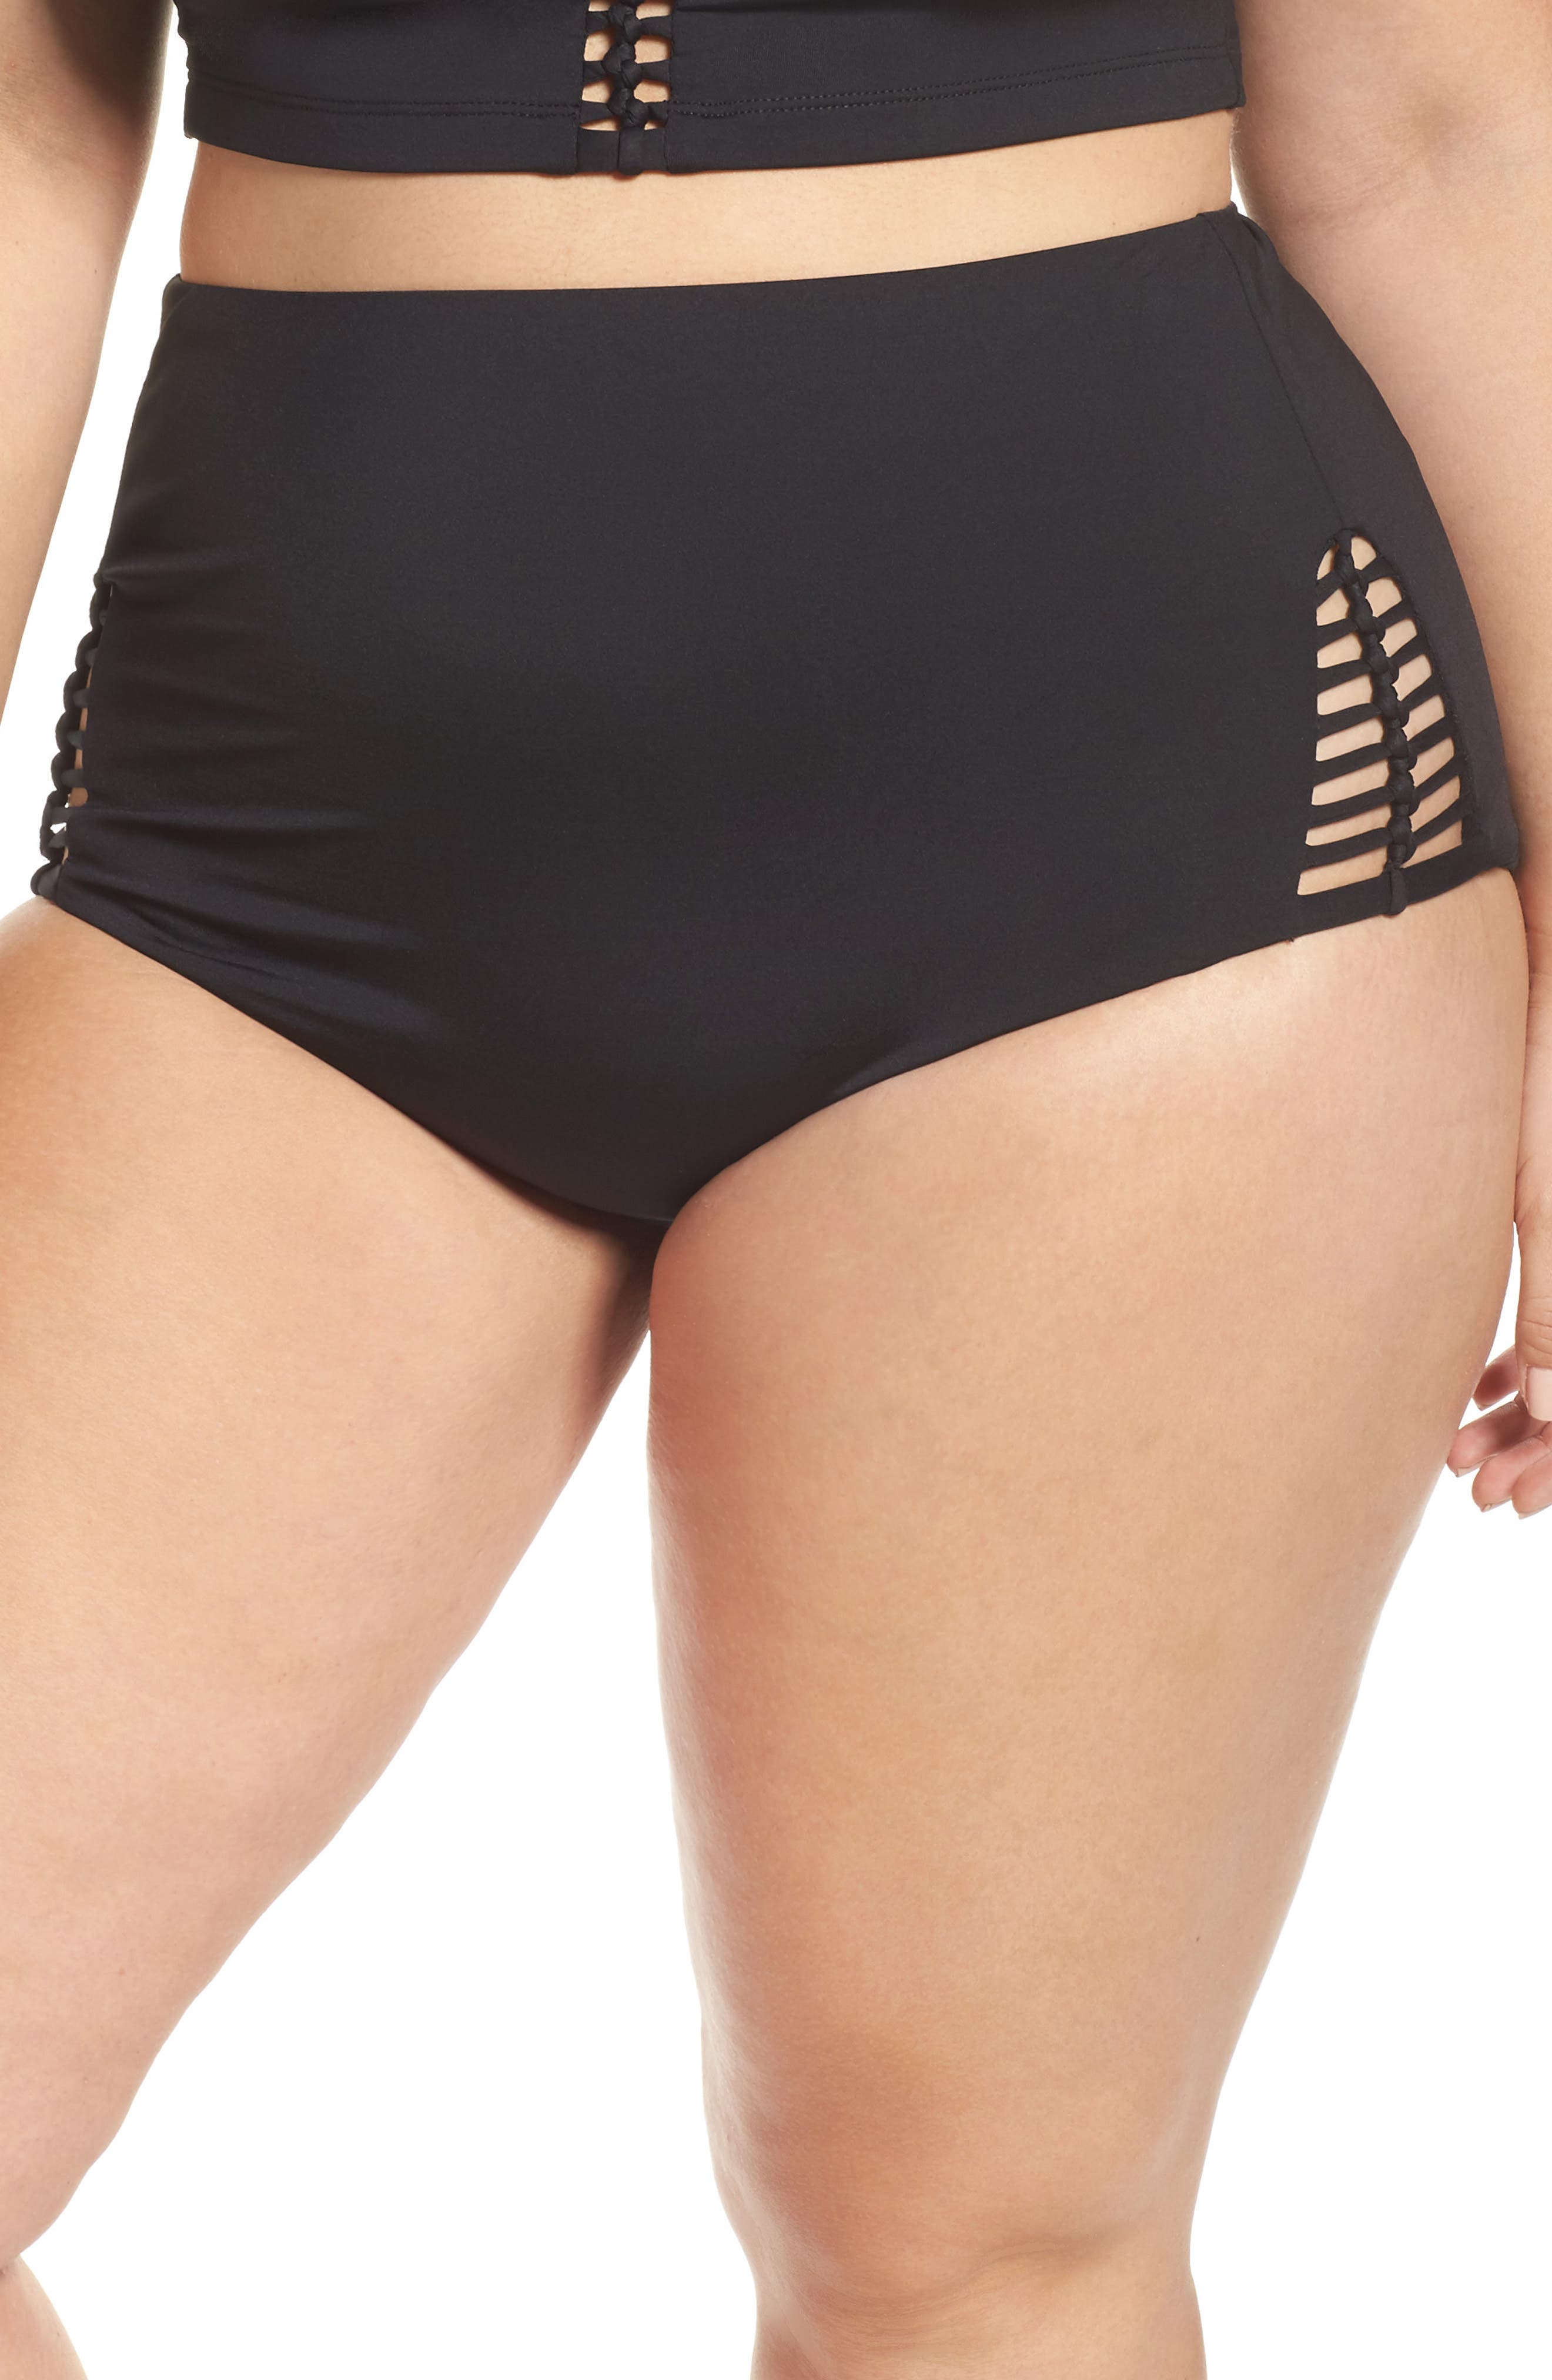 No Strings Attached High Waist Swim Briefs,                             Main thumbnail 1, color,                             Black